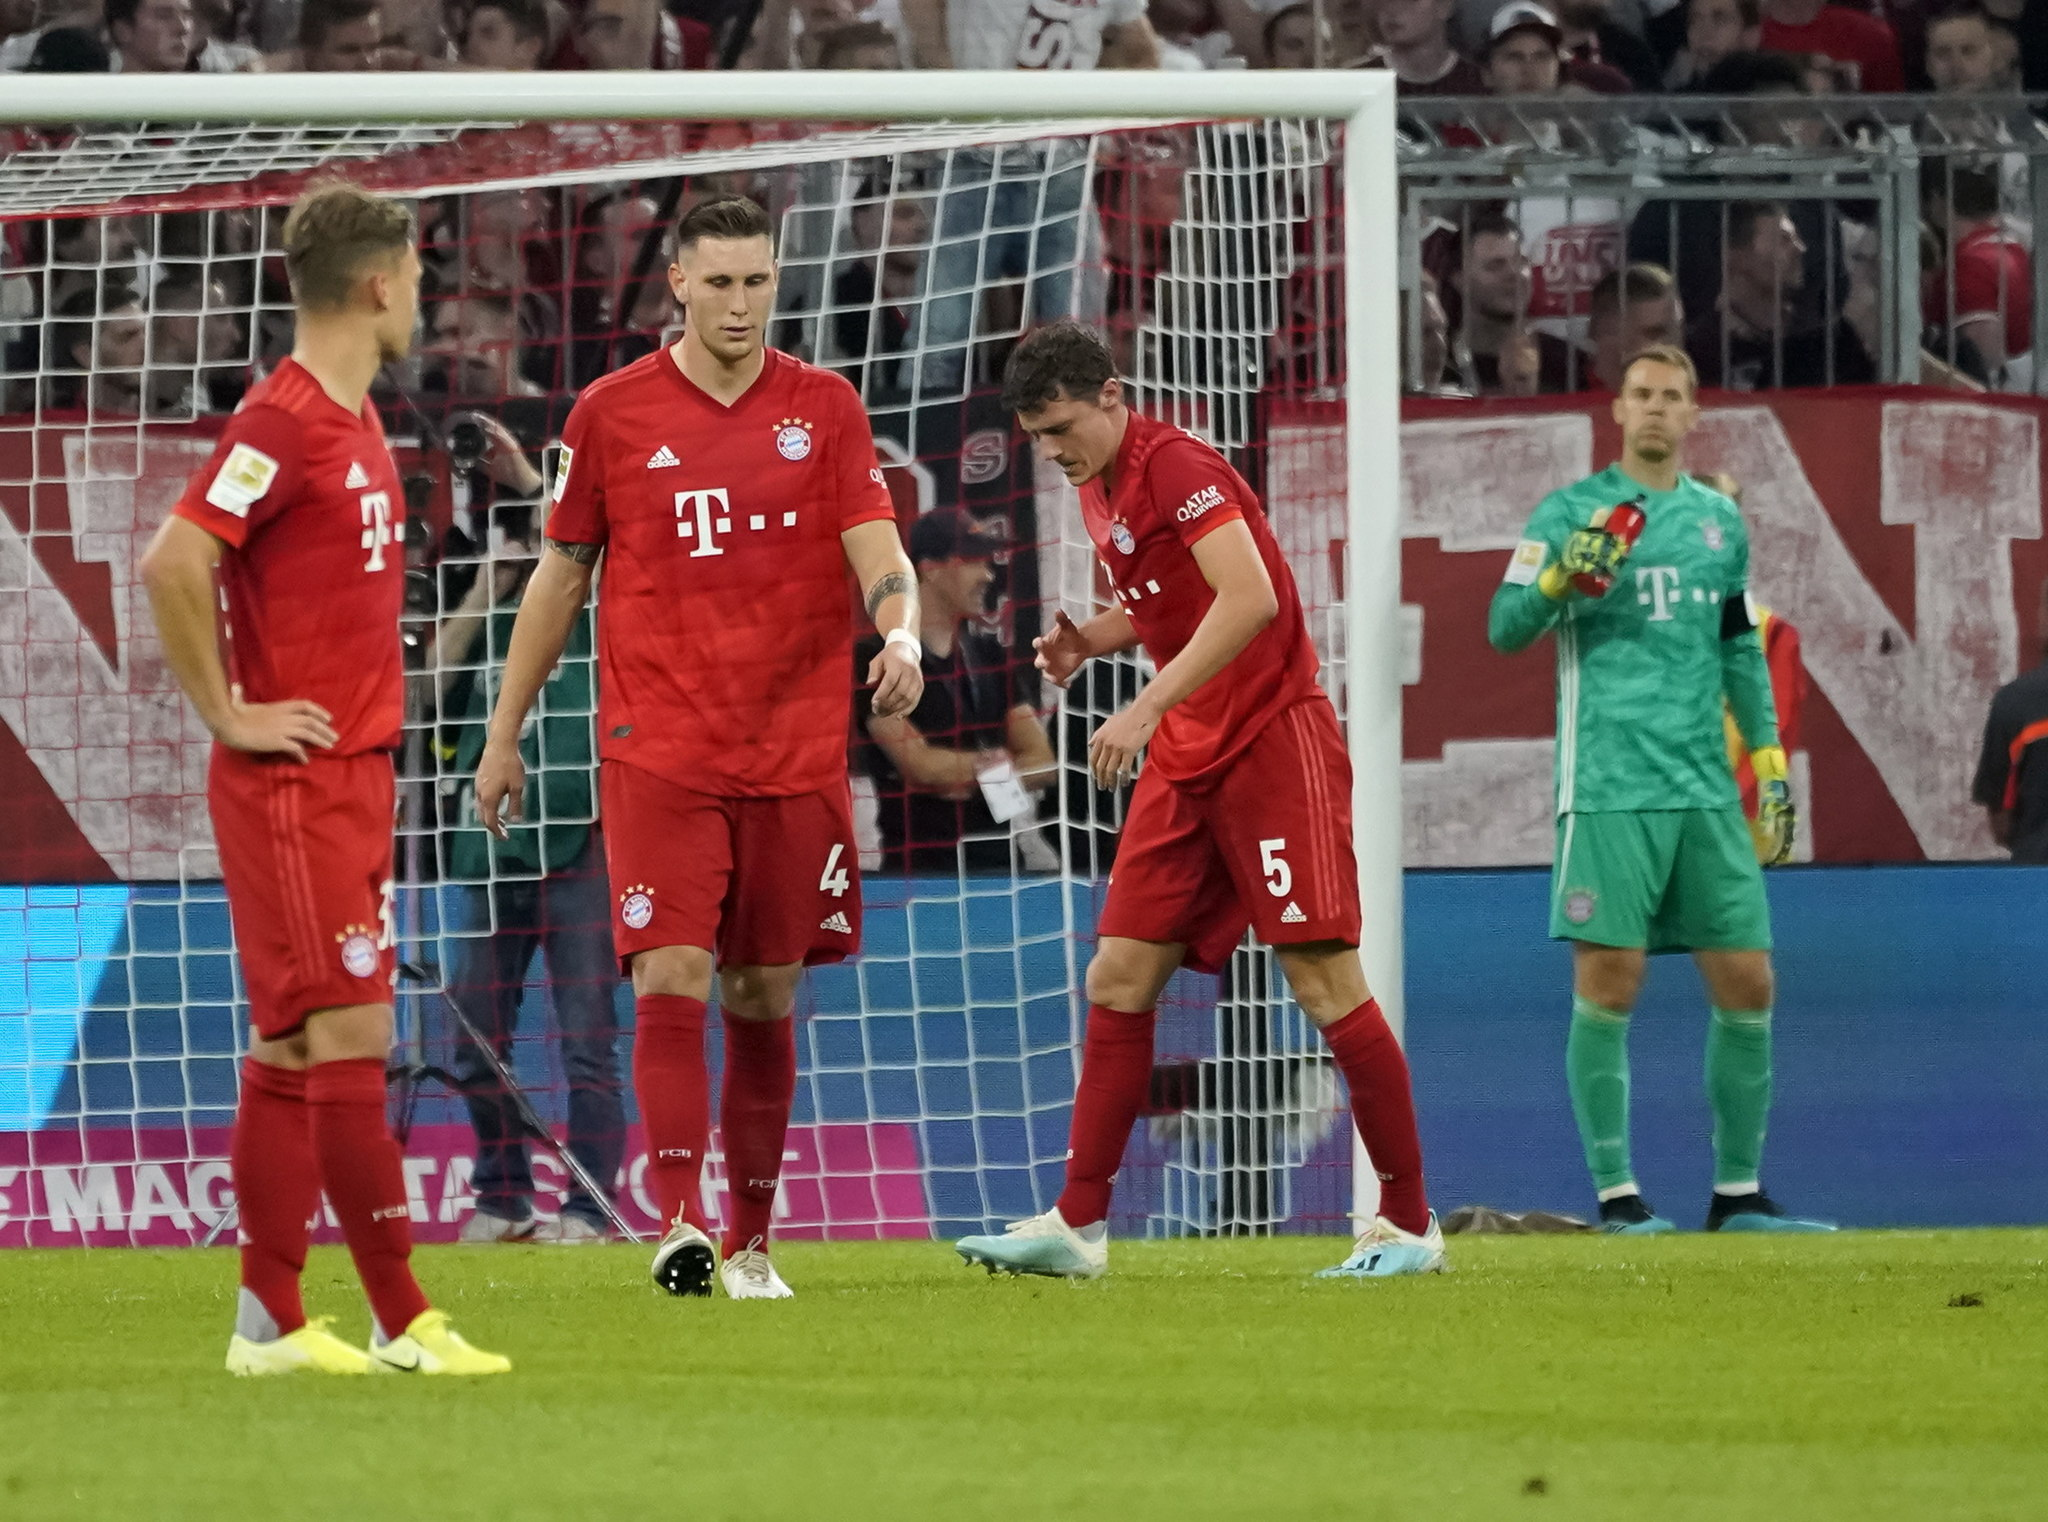 Munich (Germany), 16/08/2019.- <HIT>Bayern</HIT> players react during the German Bundesliga soccer match between FC <HIT>Bayern</HIT> Munich and Hertha BSC Berlin in Munich, Germany, 16 August 2019. (Alemania) EFE/EPA/RONALD WITTEK CONDITIONS - ATTENTION: The DFL regulations prohibit any use of photographs as image sequences and/or quasi-video